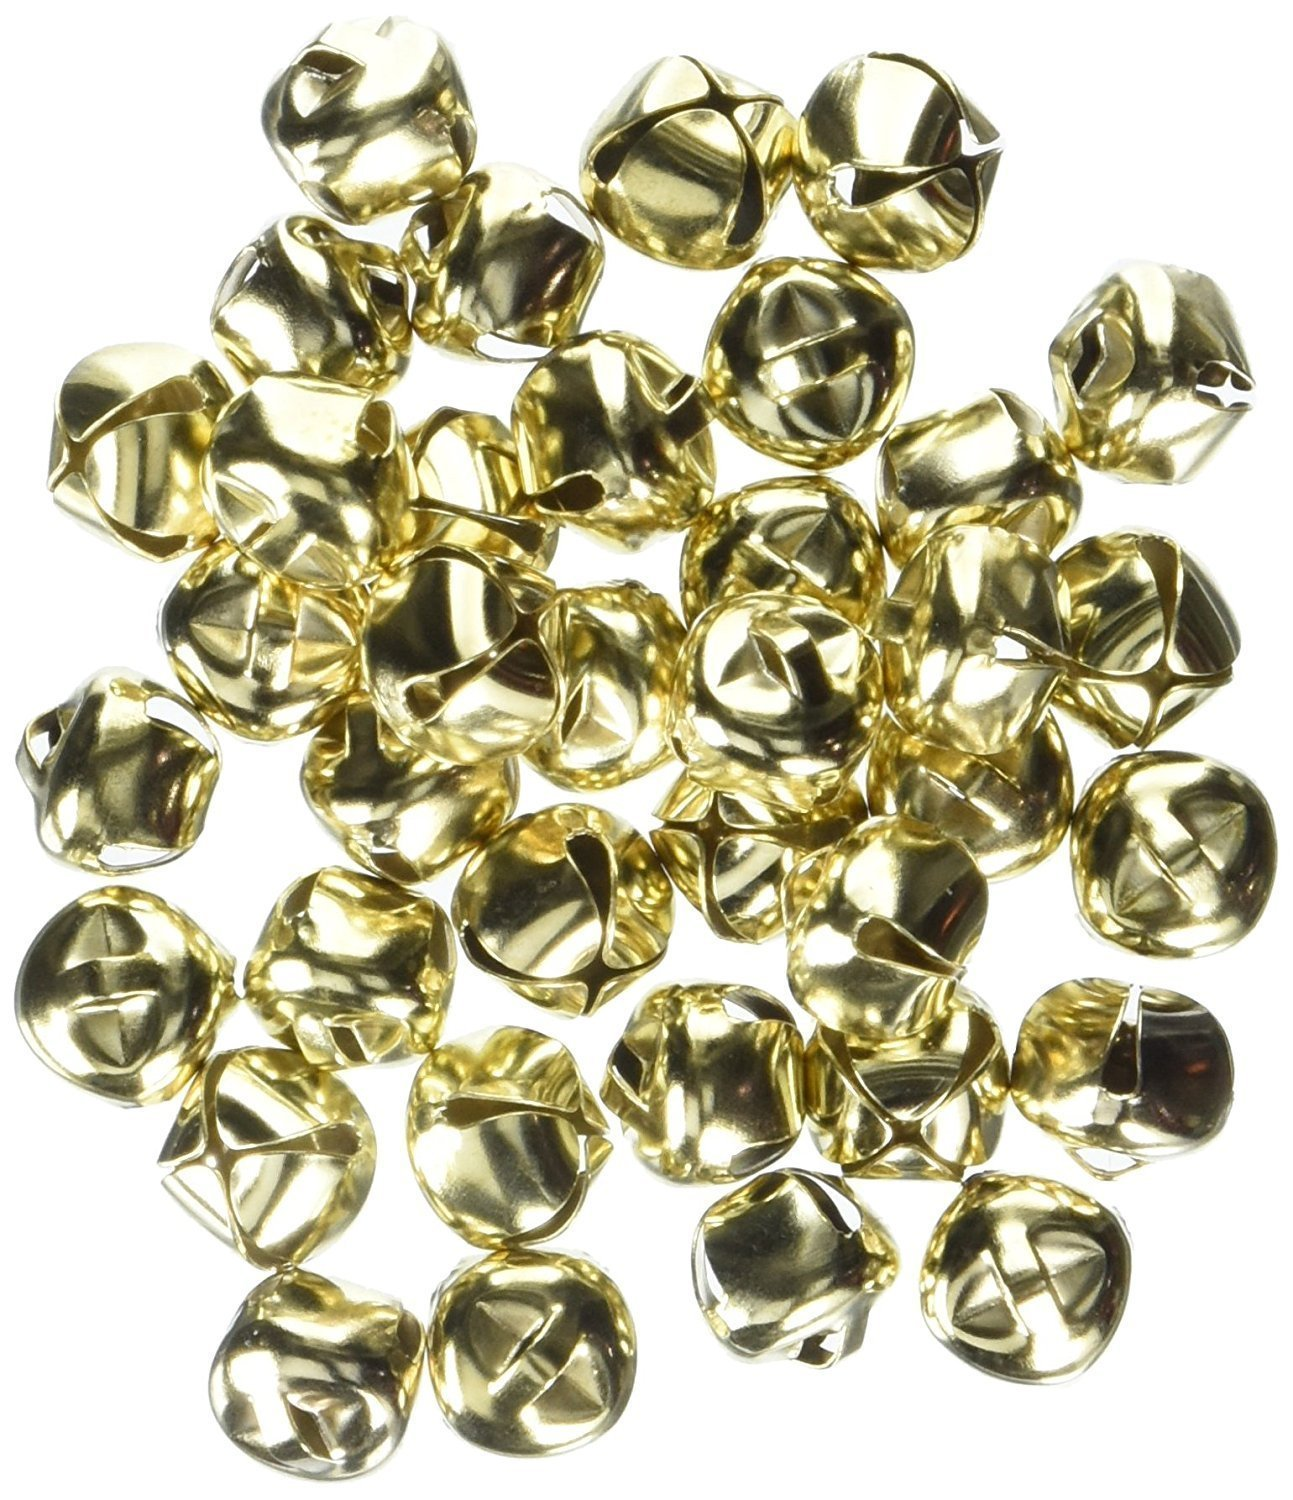 Darice 48-Piece Gold Bells, 1/2-Inch (3 Packs for Total of 144 Pieces) 4334198157